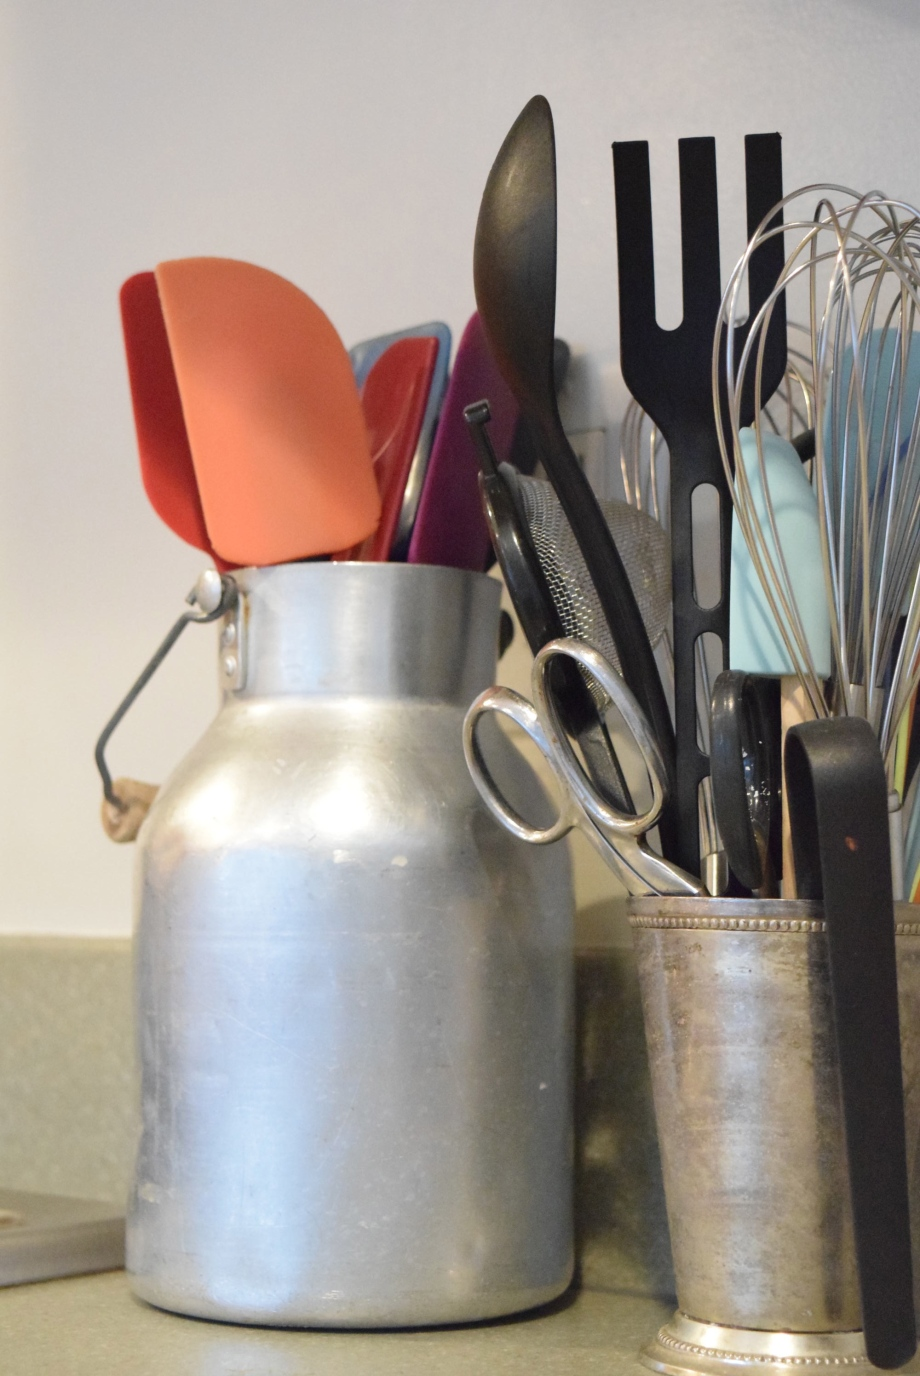 my essential kitchen equipment list and organization tips